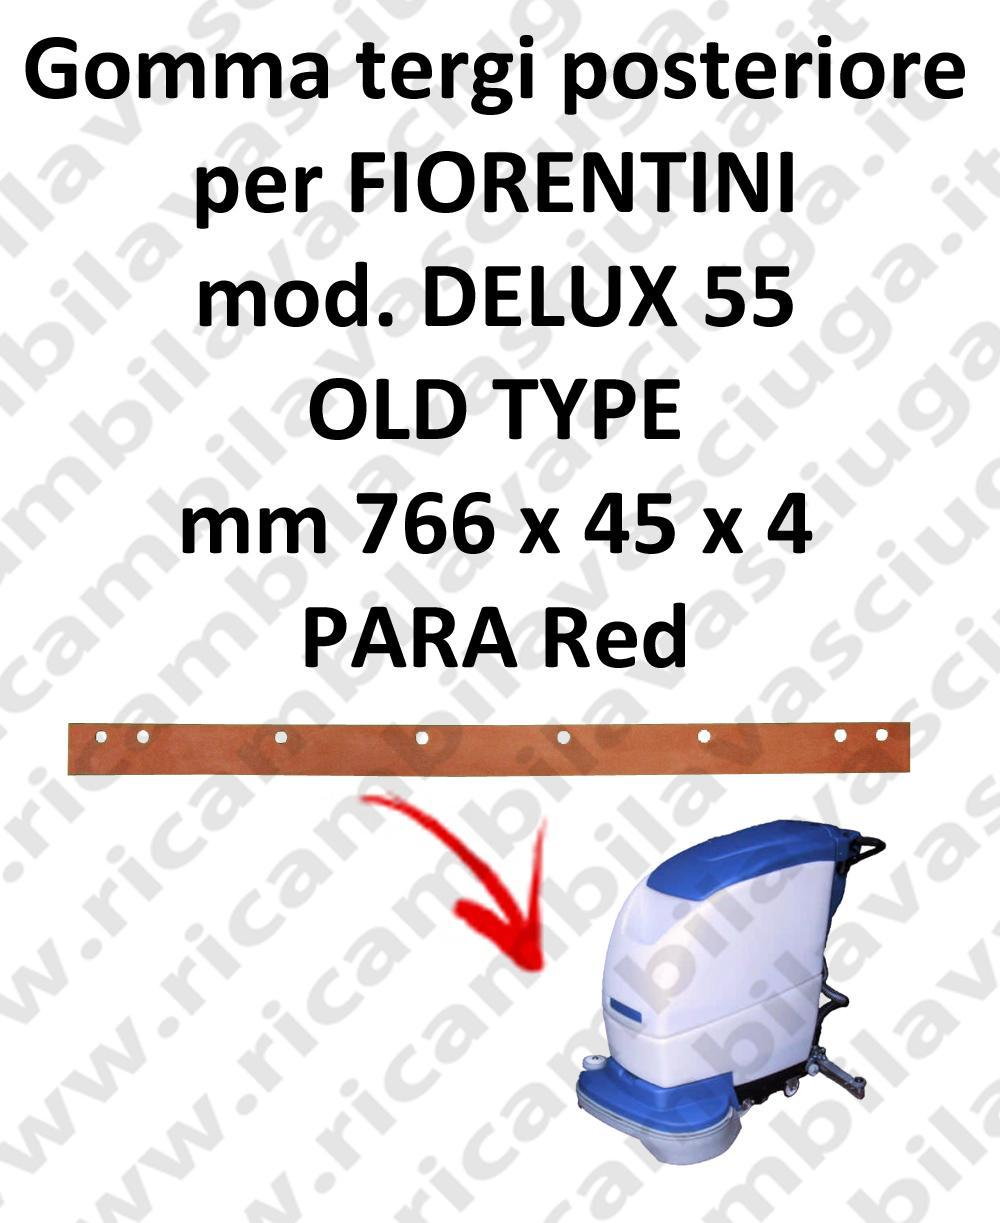 DELUX 55 old type Back Squeegee rubberfor FIORENTINI squeegee